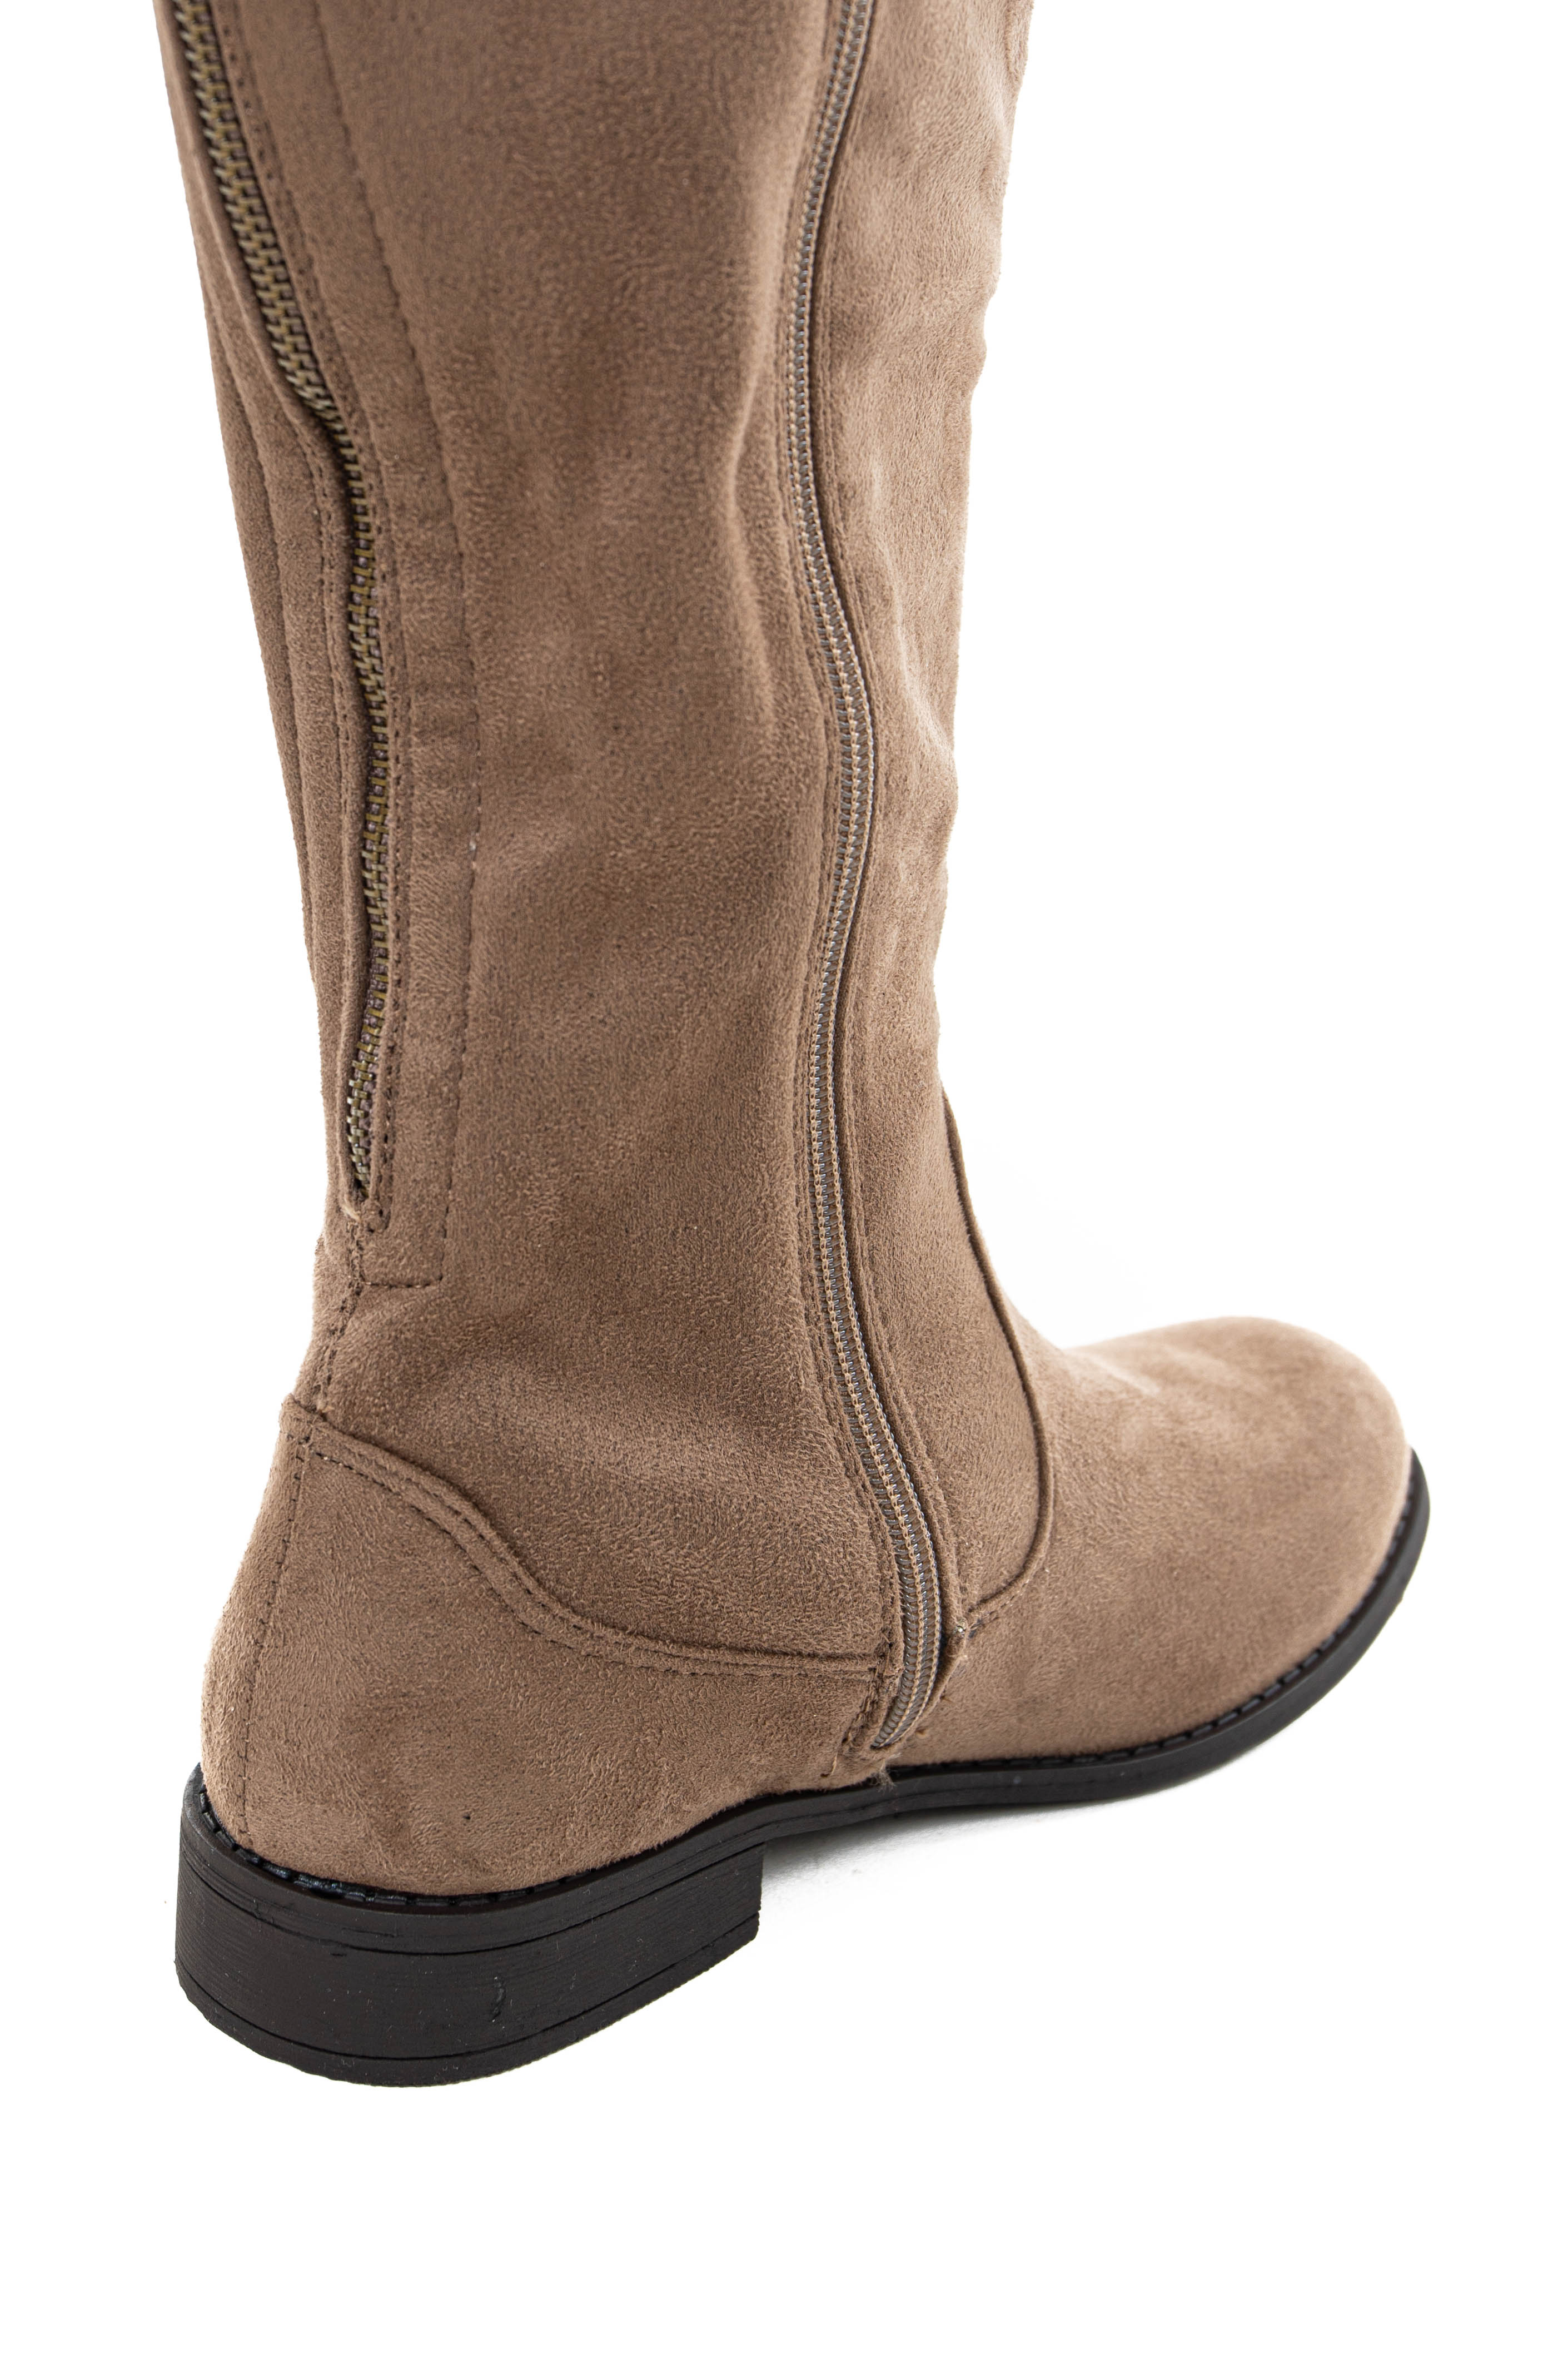 Taupe Faux Suede Knee High Zip Up Boots